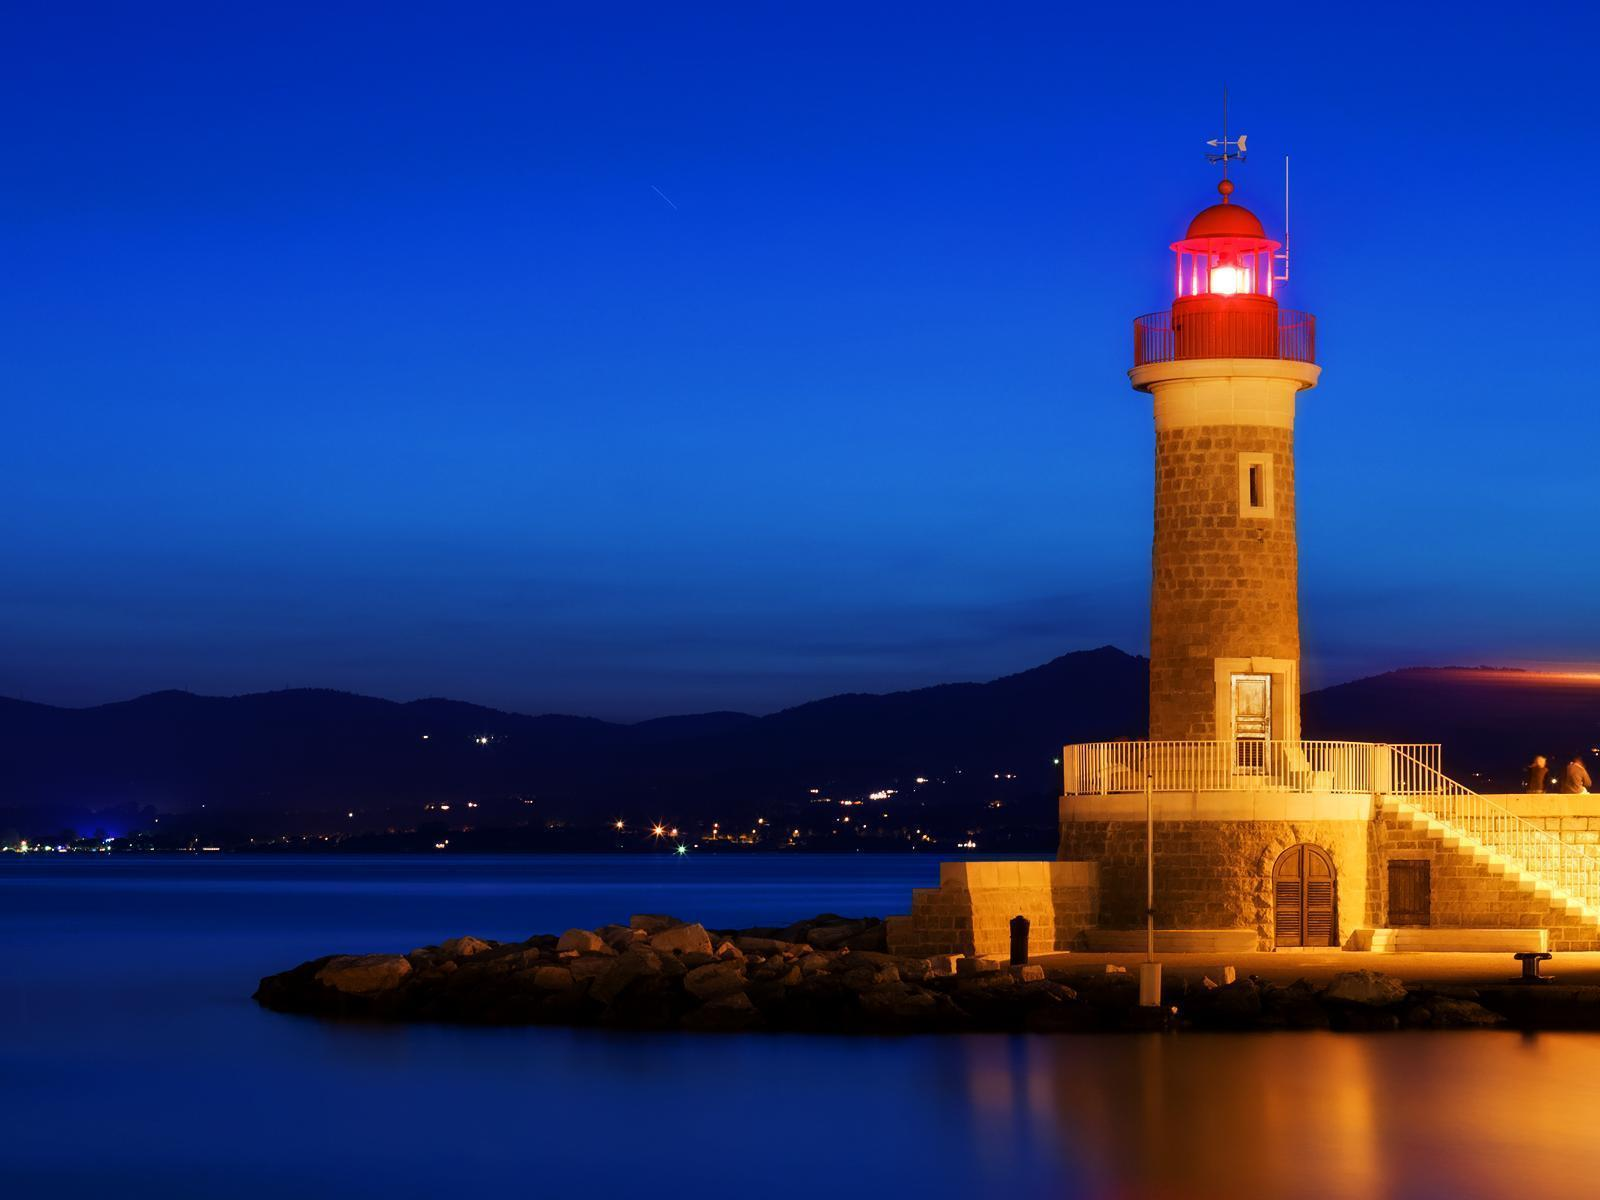 Red Cap Lighthouse wallpapers – Republicans Have Guiding Principles